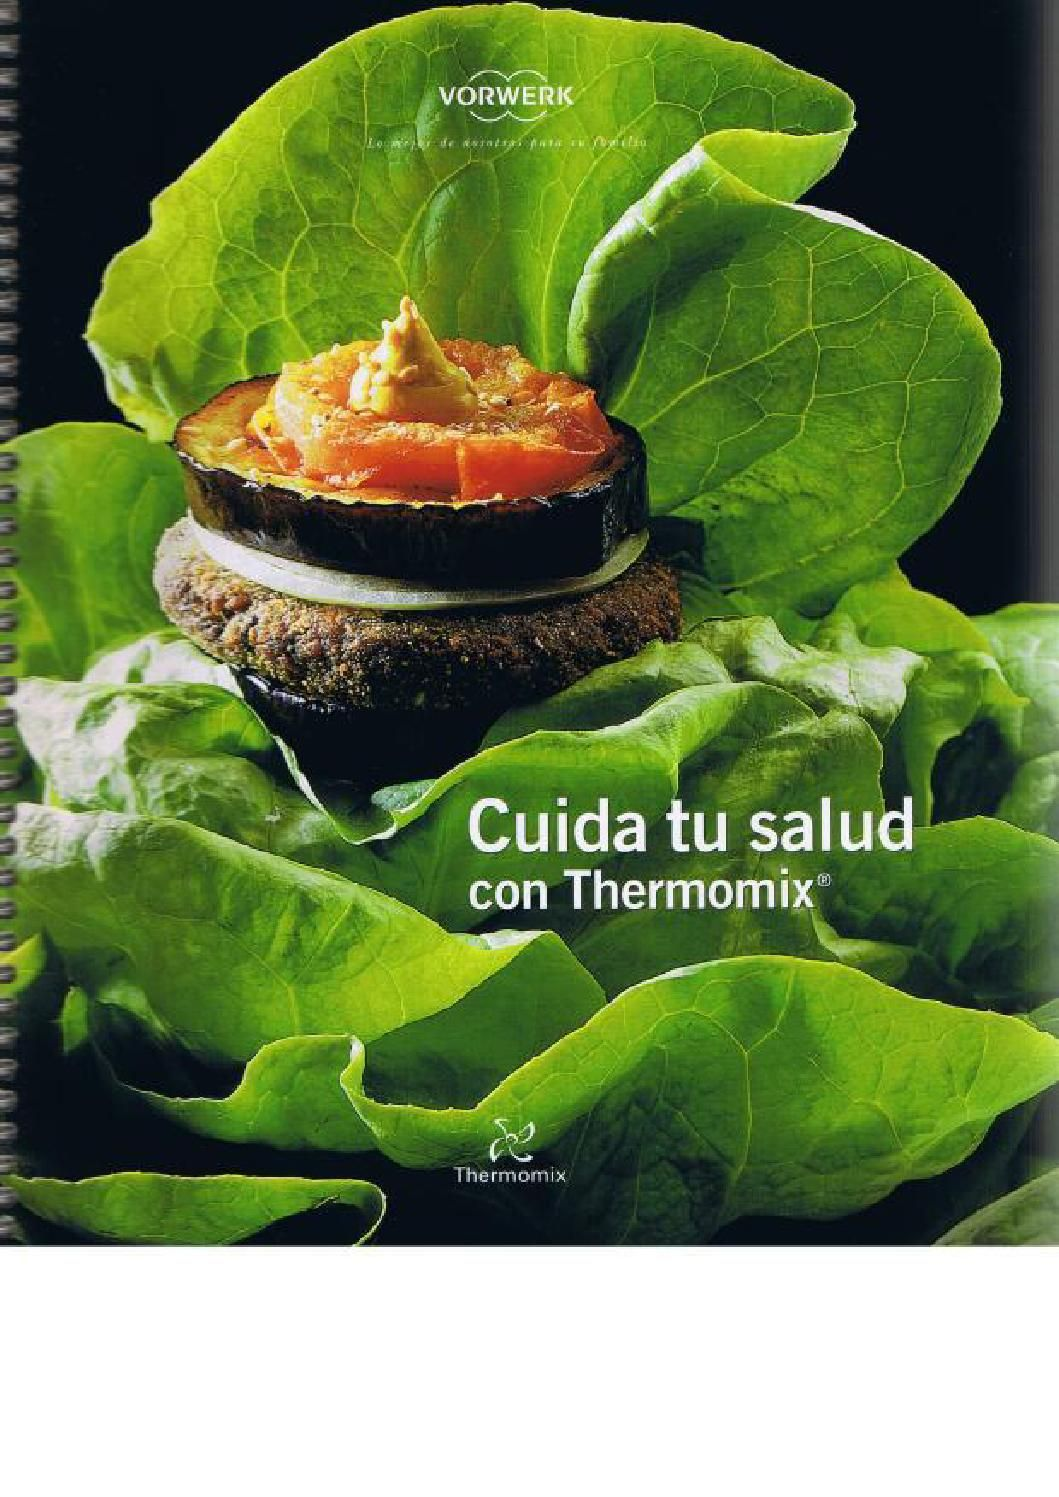 Thermomix Libros Oficiales Thermomix Cuida Tu Salud Recetas Thermomix Pinterest